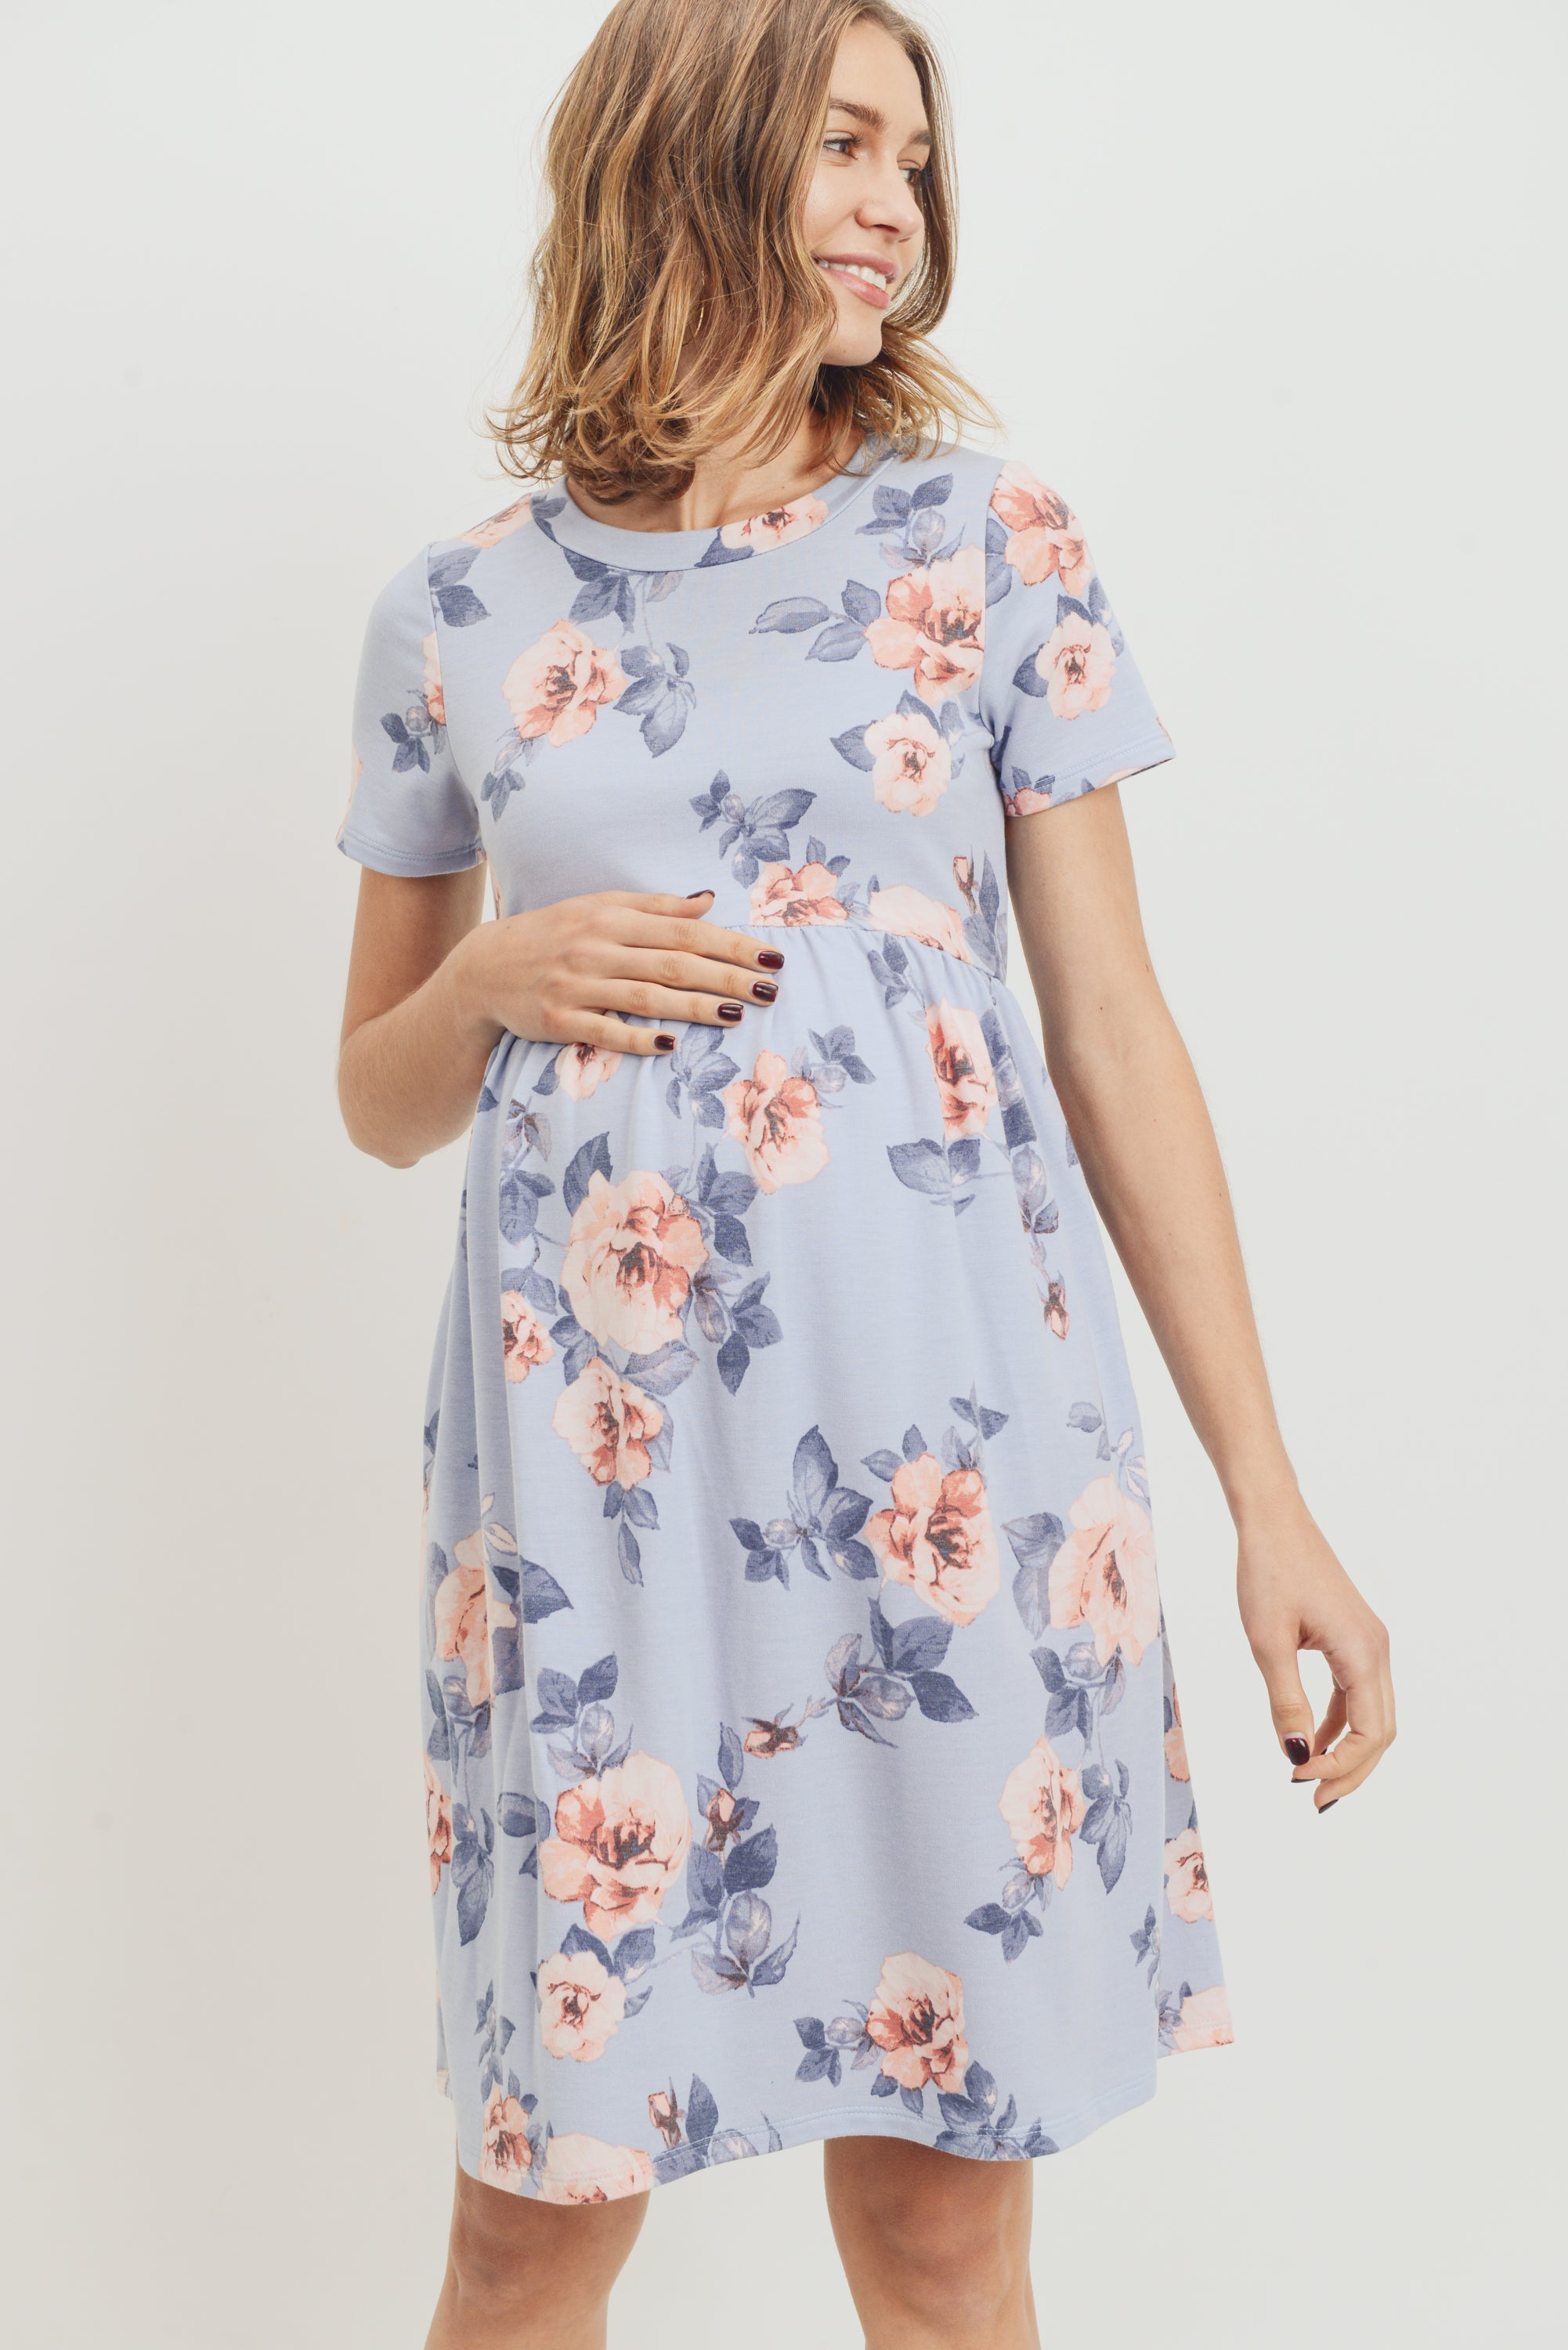 Chambray Floral Babydoll Maternity Dress